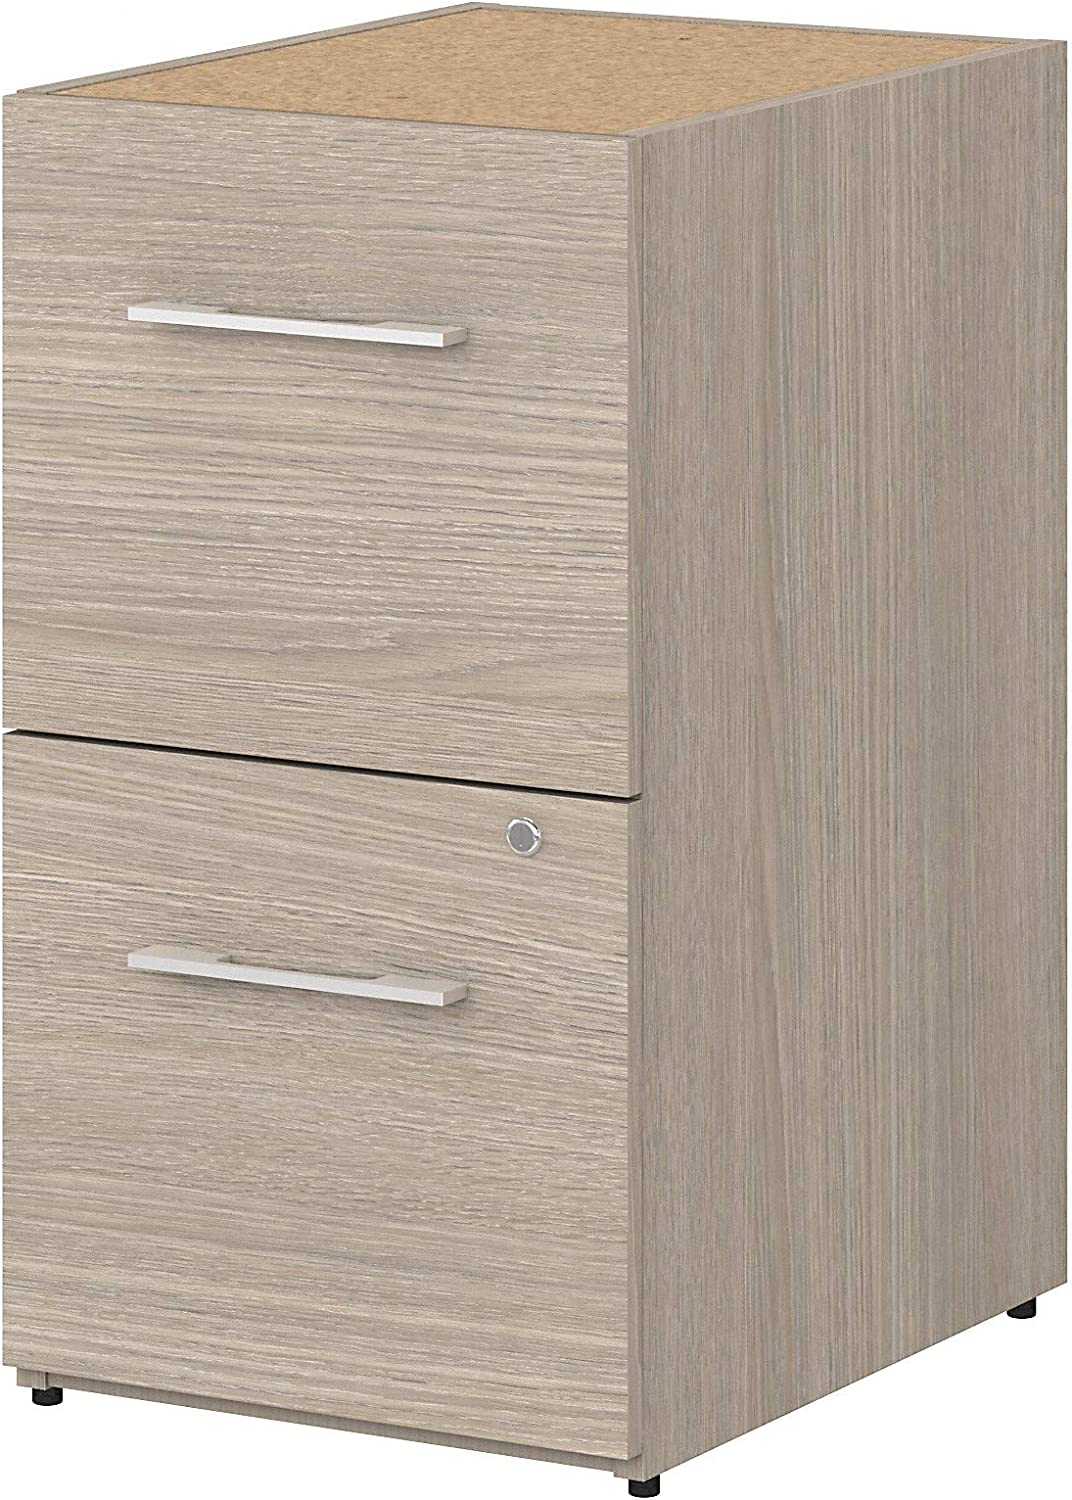 Bush Business Furniture Office 500 Max 54% OFF 2 File Easy-to-use Drawer Cabinet-Assembl